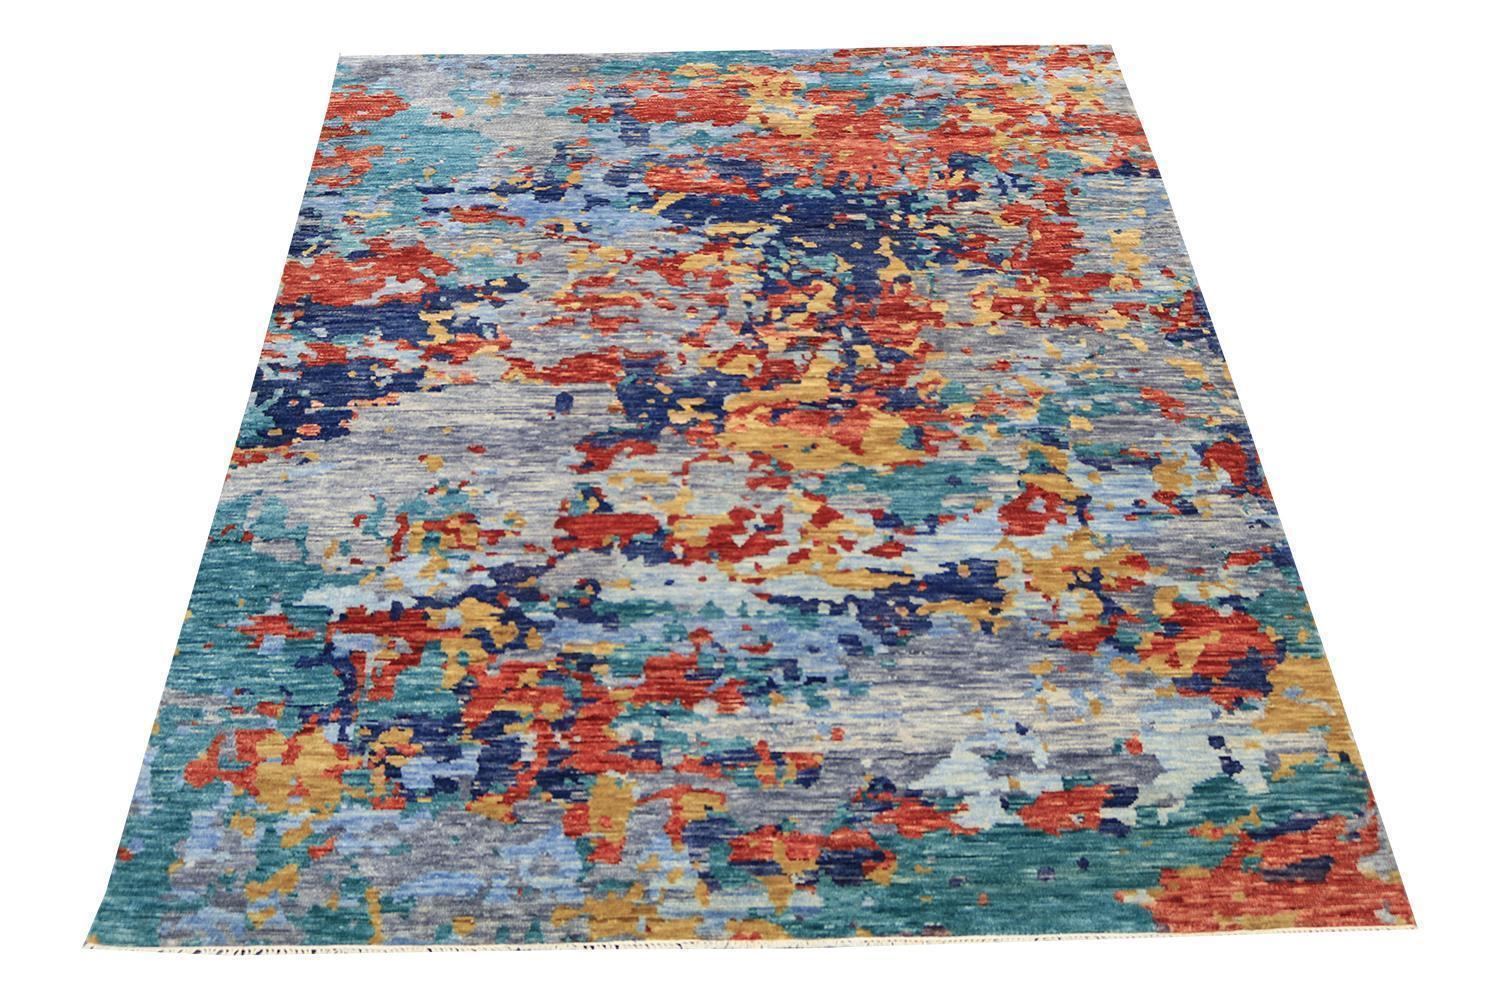 decorative play mat.htm 8 decor elements that bring out the best in your area rugs  blog  bring out the best in your area rugs